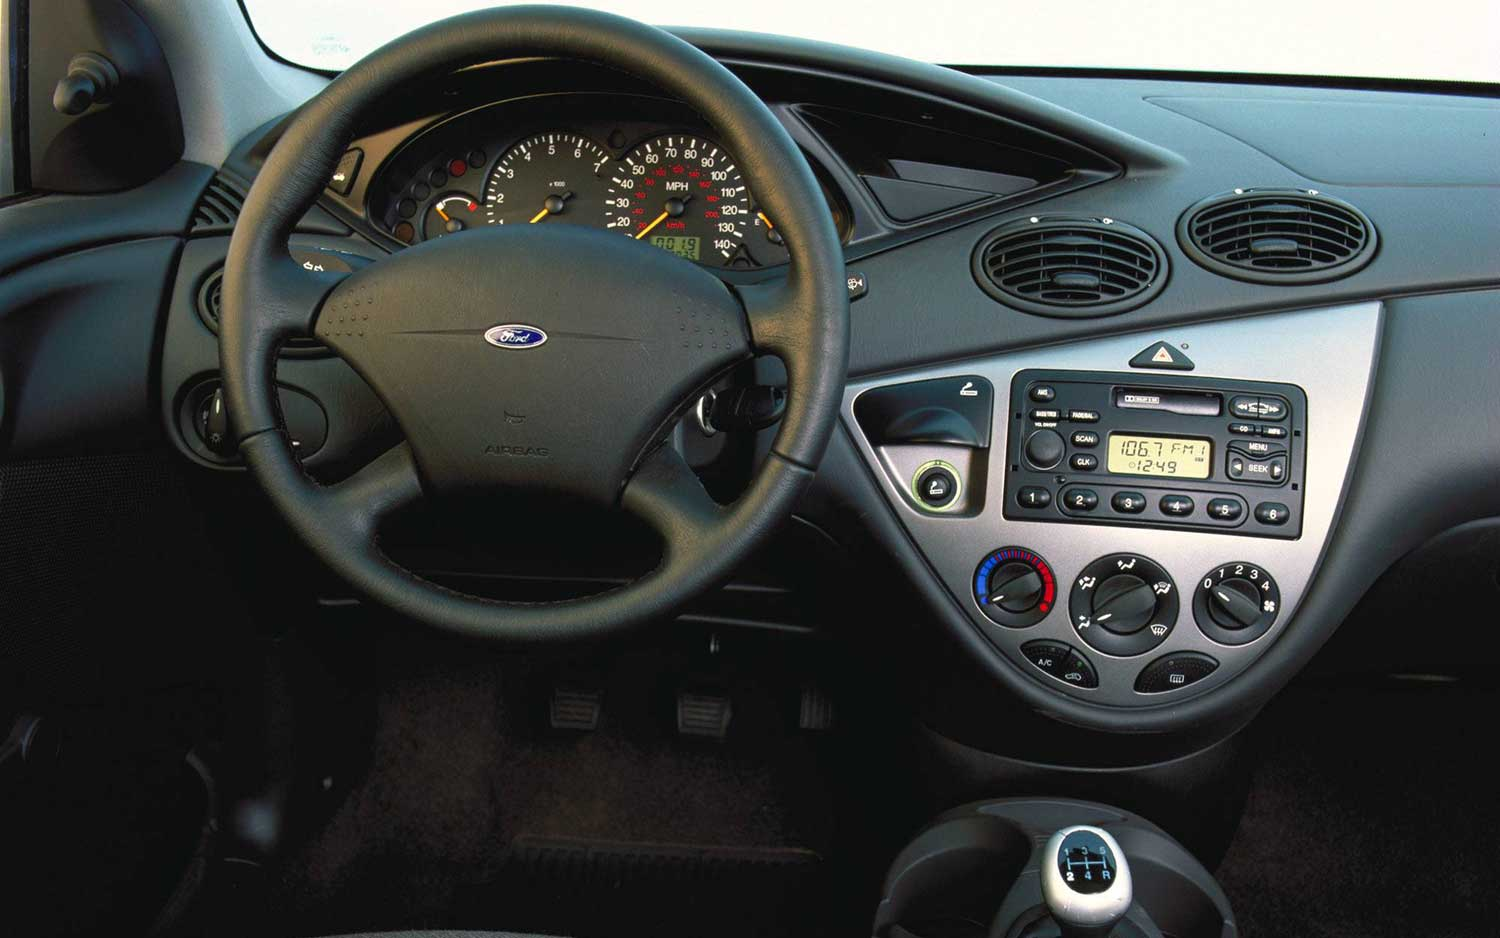 2000 ford focus image 10